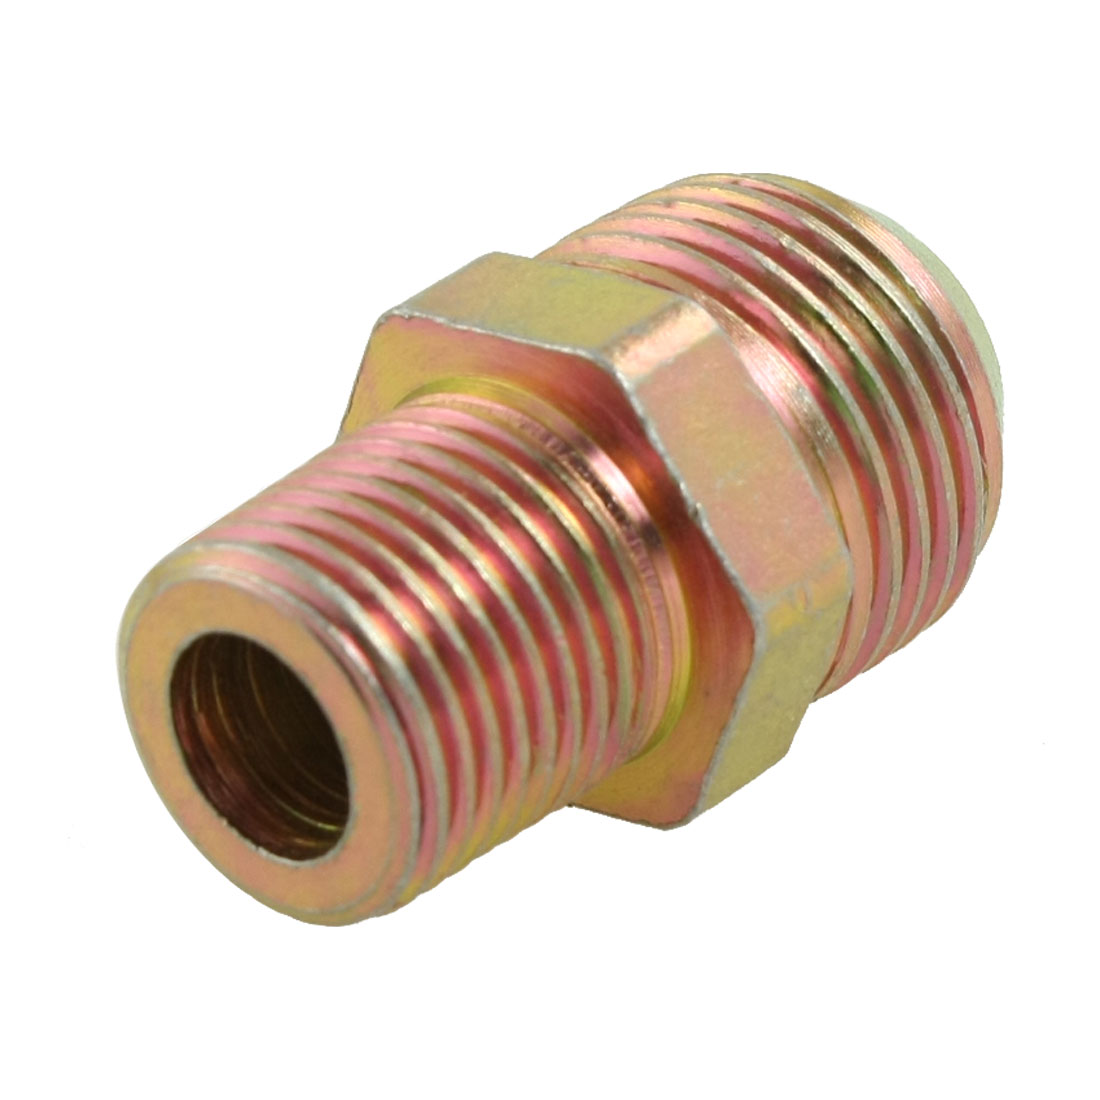 "3/4"" NPT x 1/2"" PT Male Flare Hex Nipple Reducer Fitting Connector"